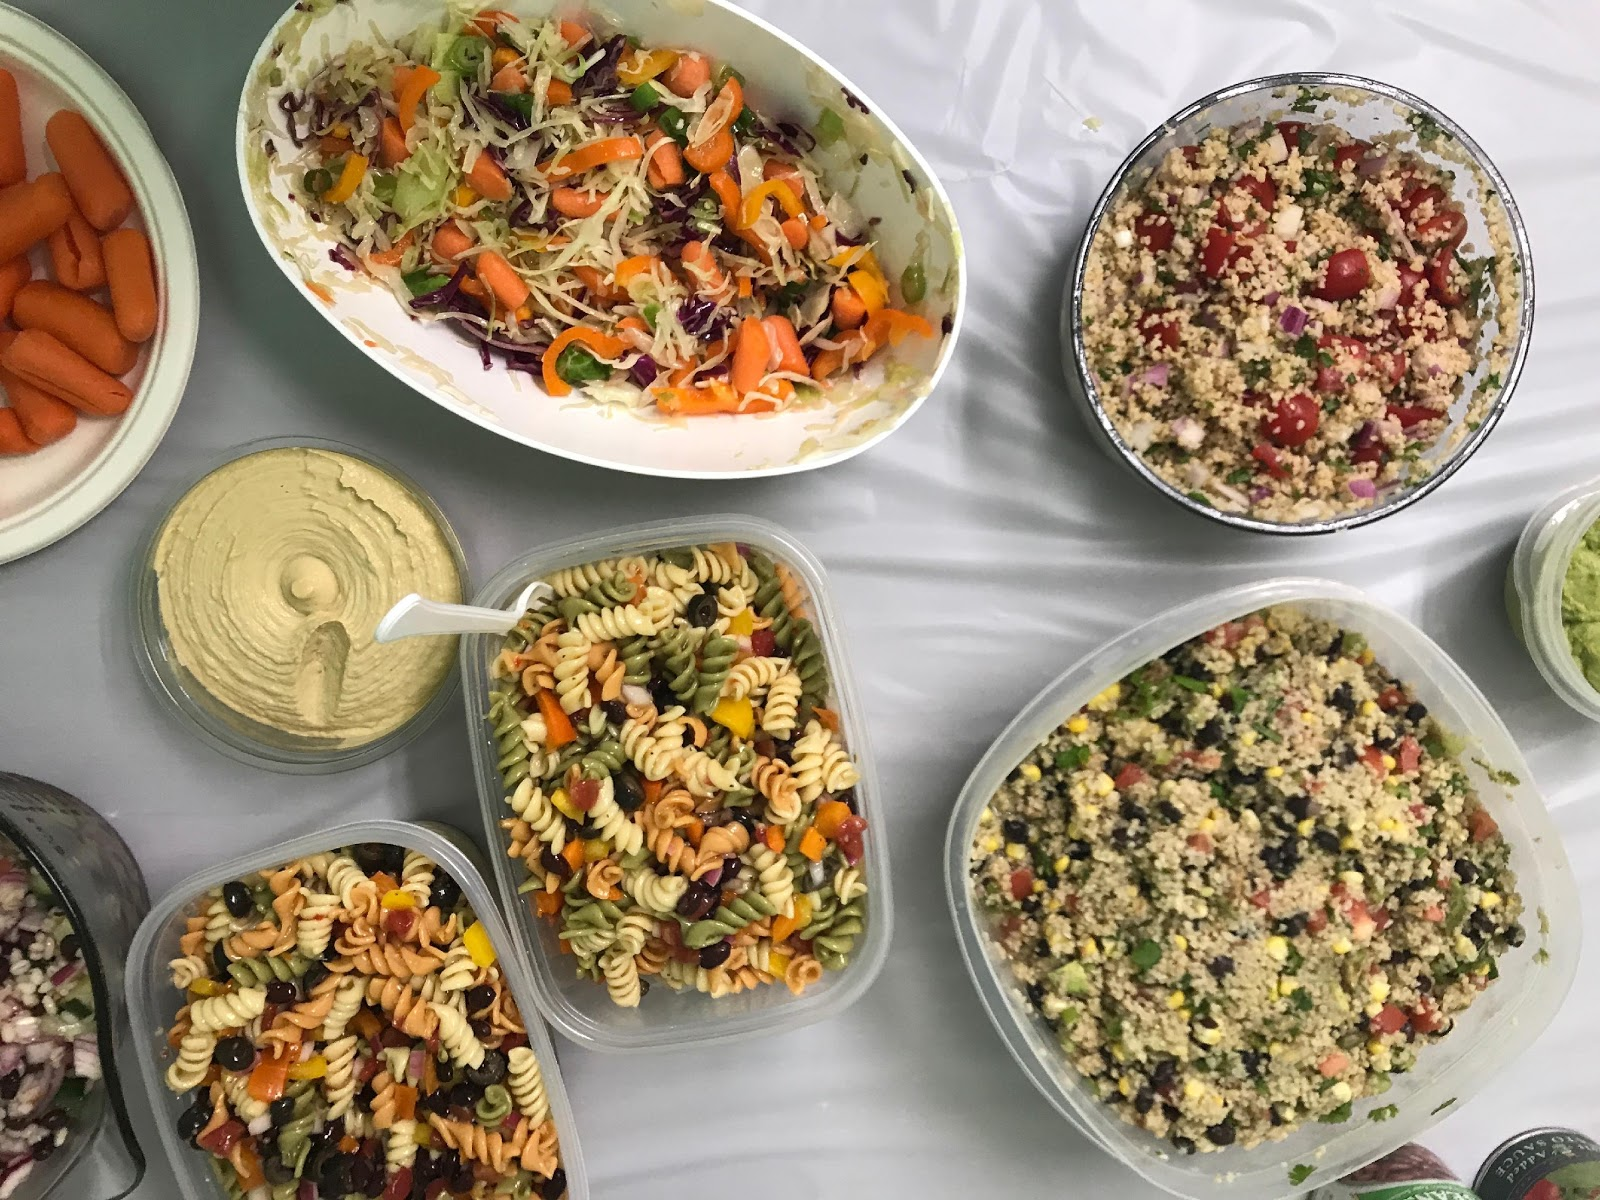 vegetarian resource group Vegetarian nutrition information, recipes, books, and publishers of vegetarian journal the vegetarian resource group (vrg) is a non-profit organization dedicated to educating the public on vegetarianism and the interrelated issues of health, nutrition, ecology, ethics, and world hunger.